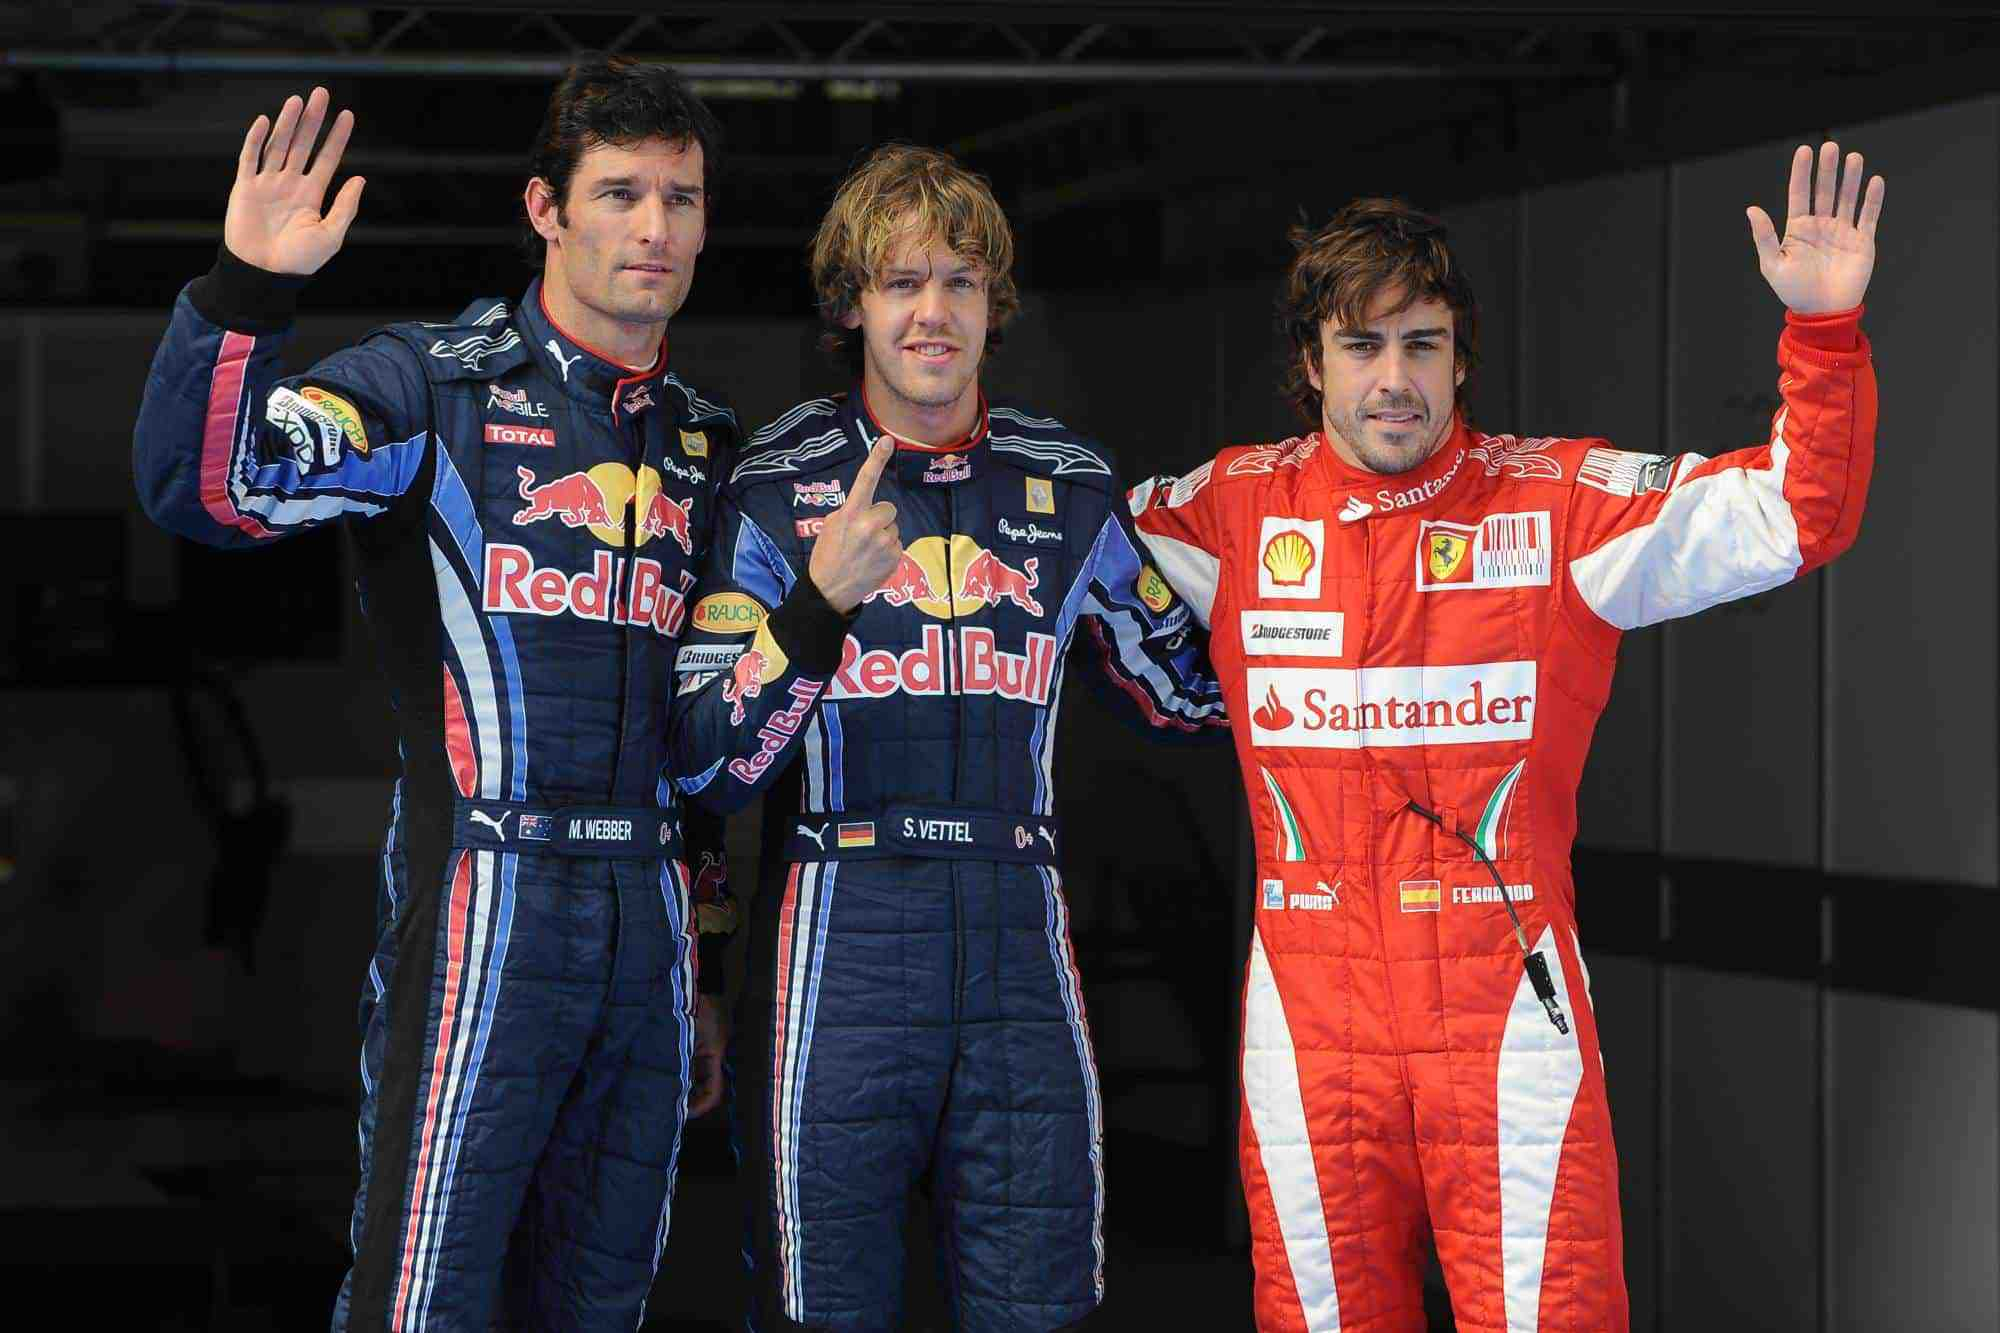 Chinese GP F1 2010 qualifying top 3 Vettel Webber Alonso